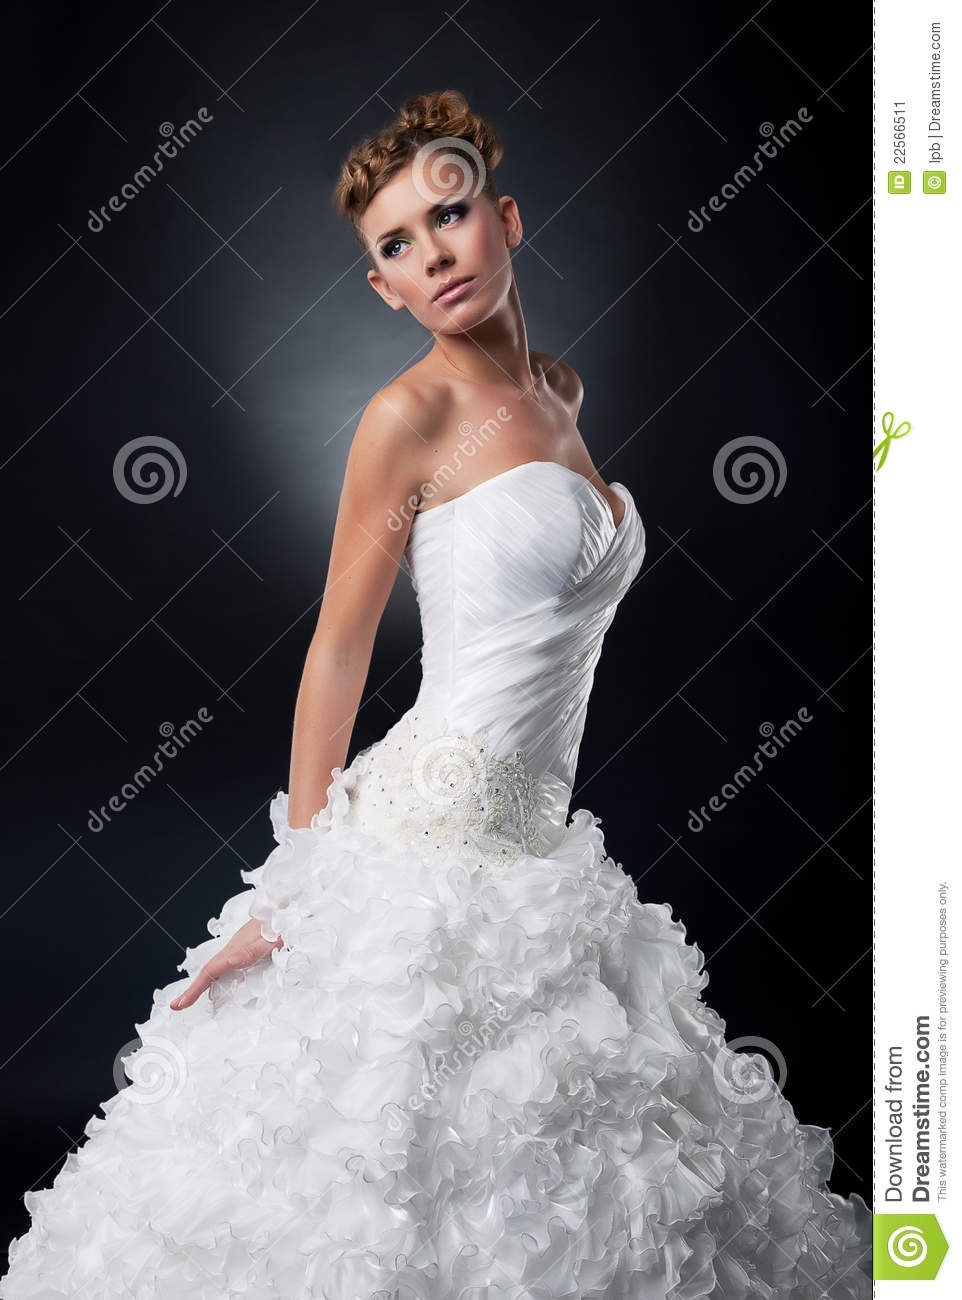 Beautiful young bride in bridal dress posing stock image for Wedding dresses for young brides